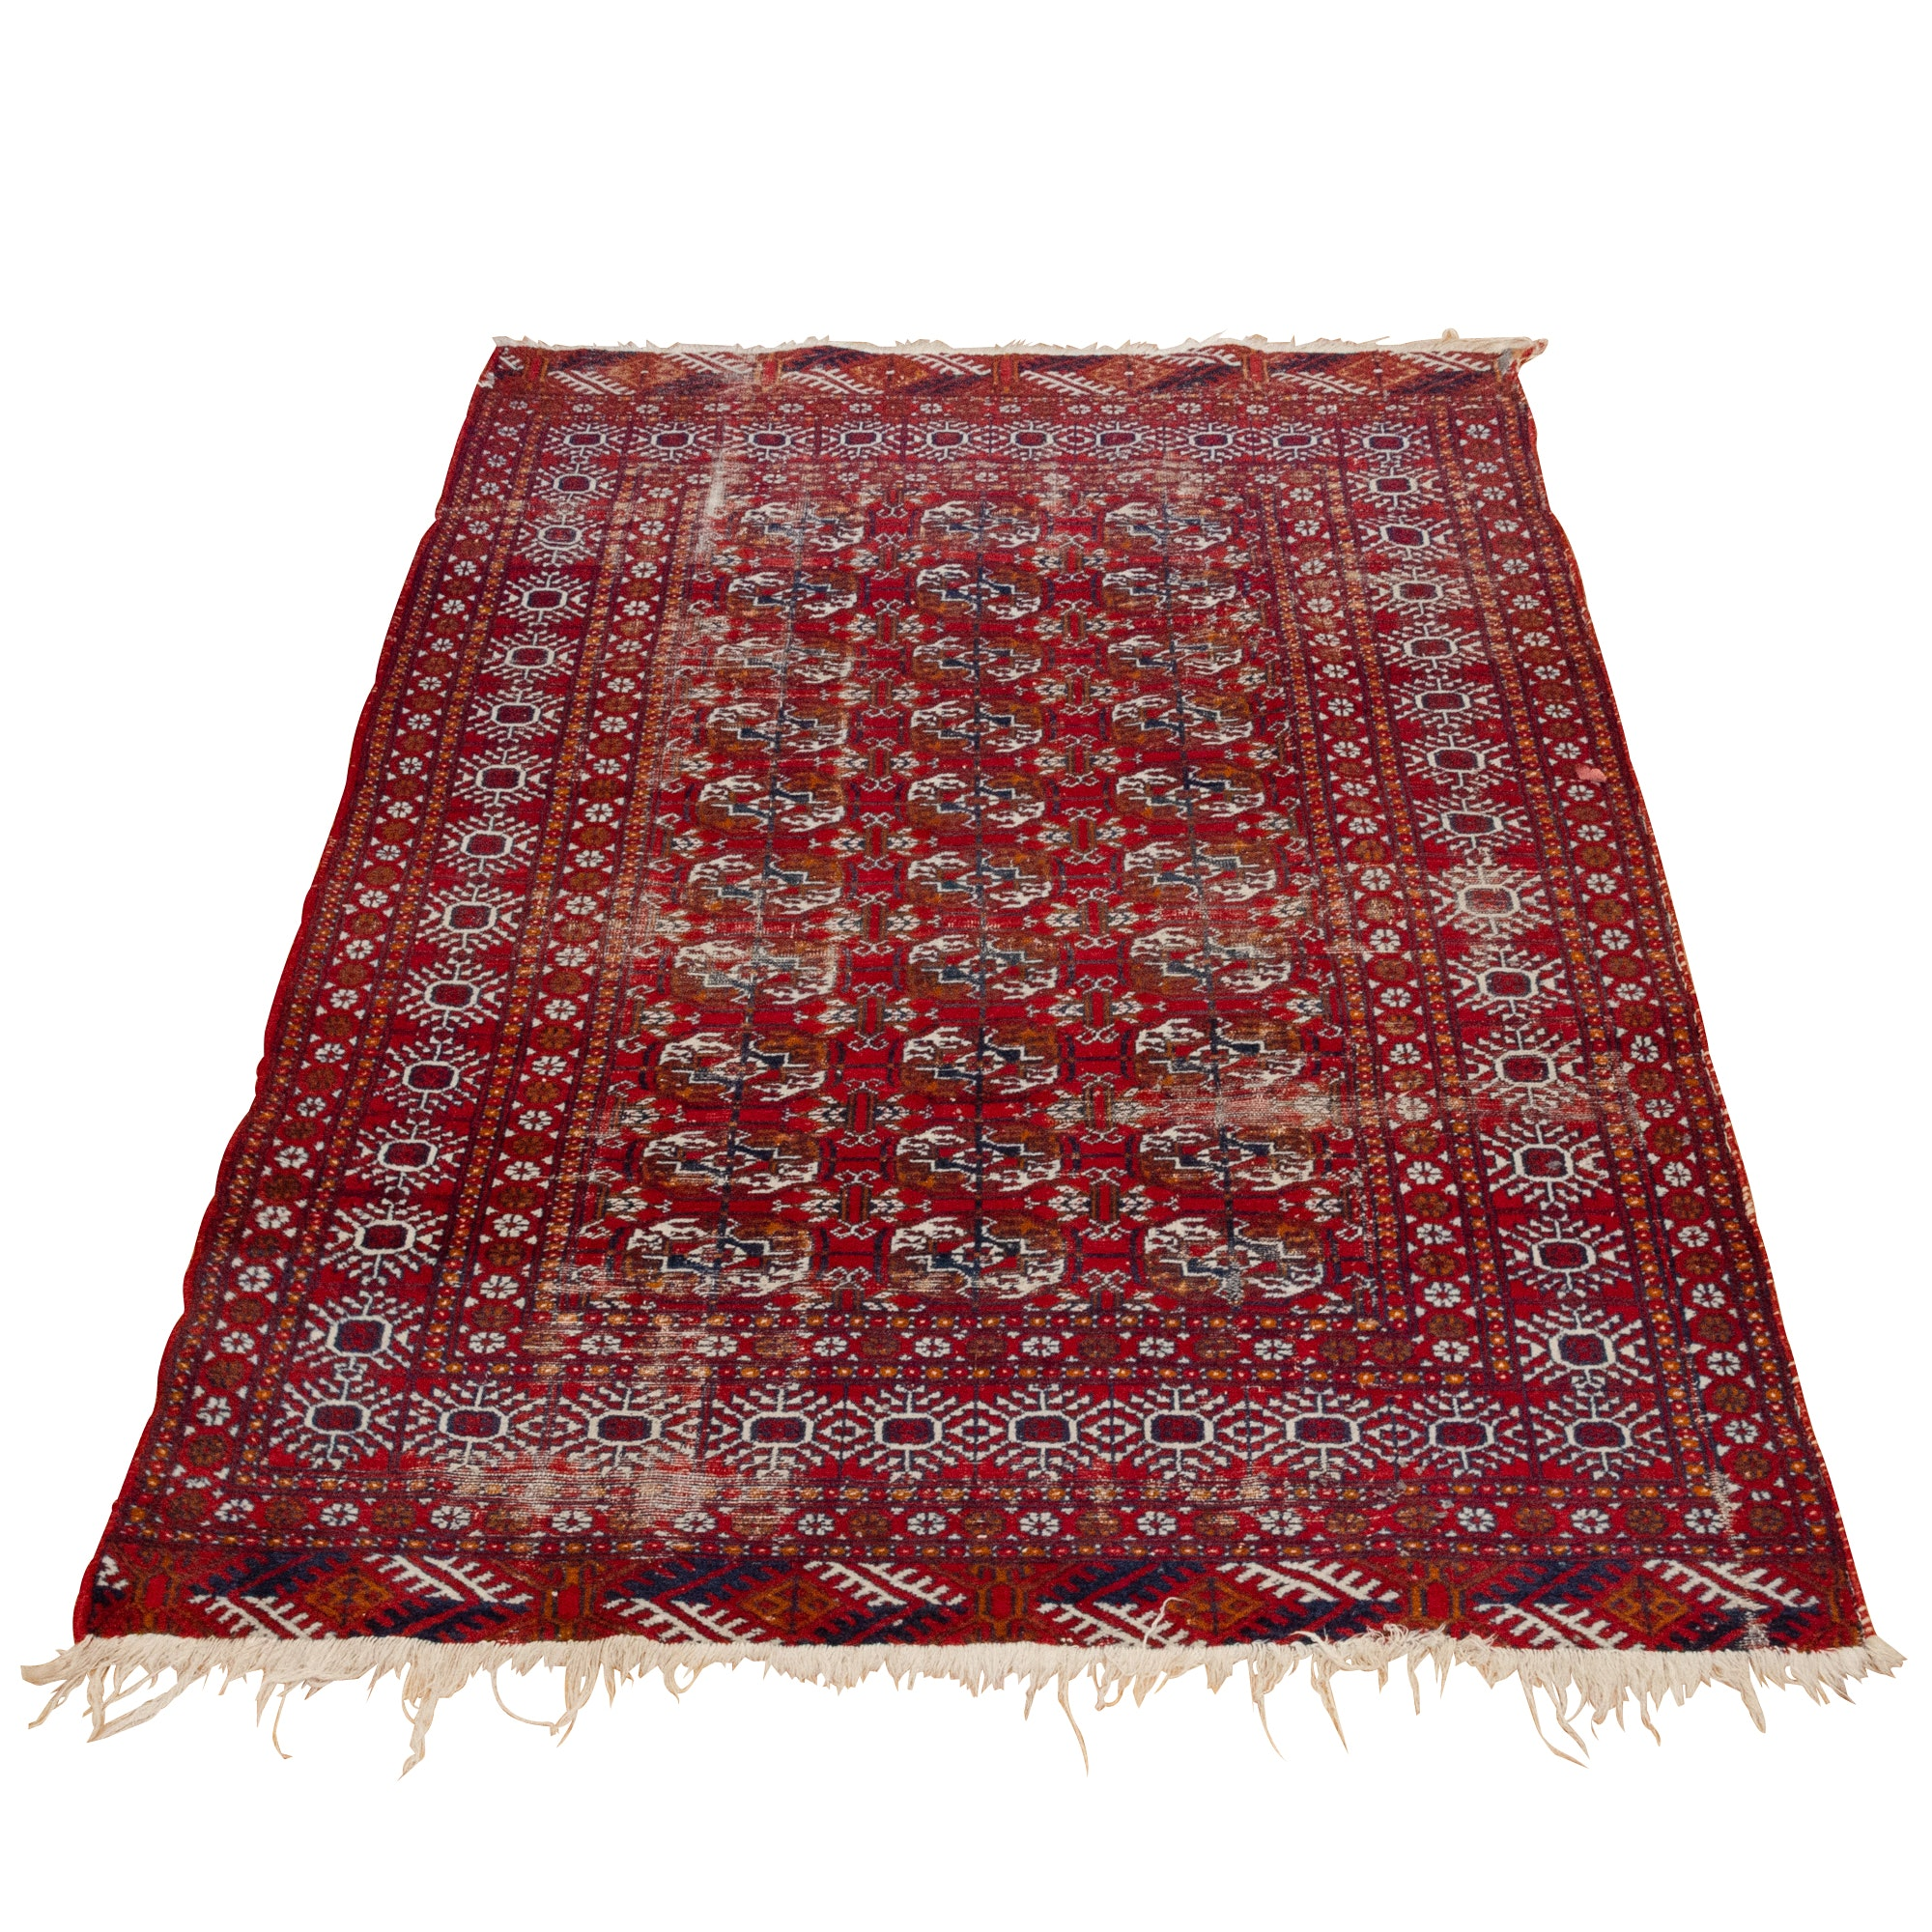 Semi-Antique Hand-Knotted Turkmen Bokhara Wool Rug